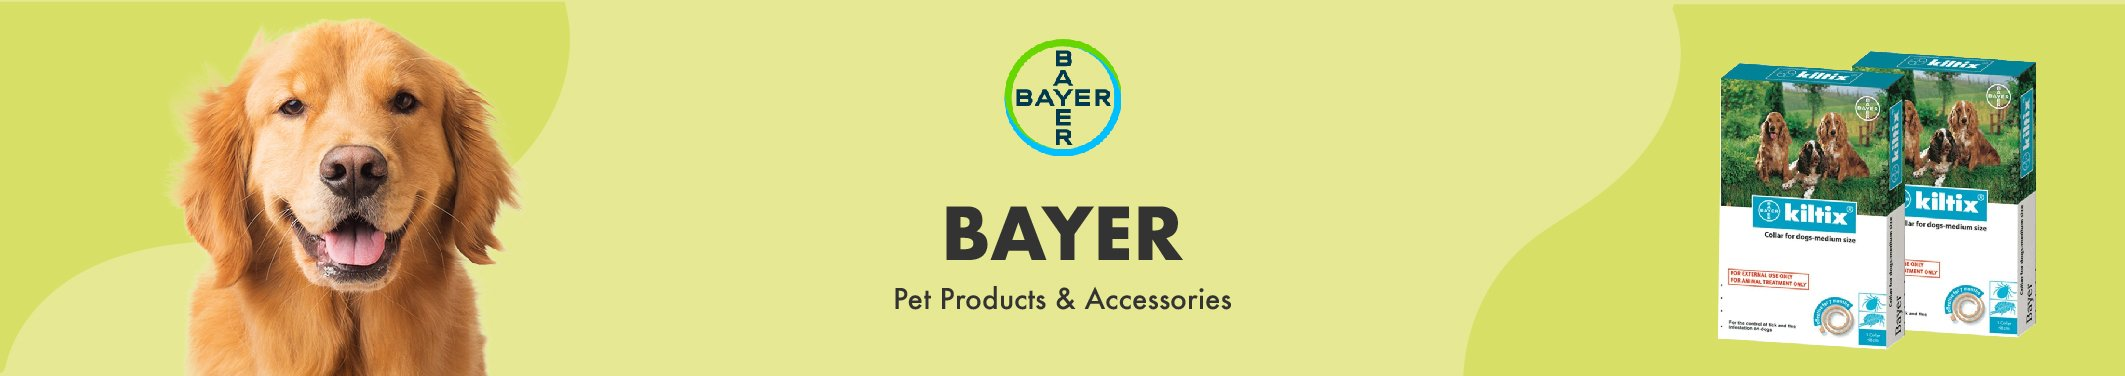 Bayer Pet Products & Accessories